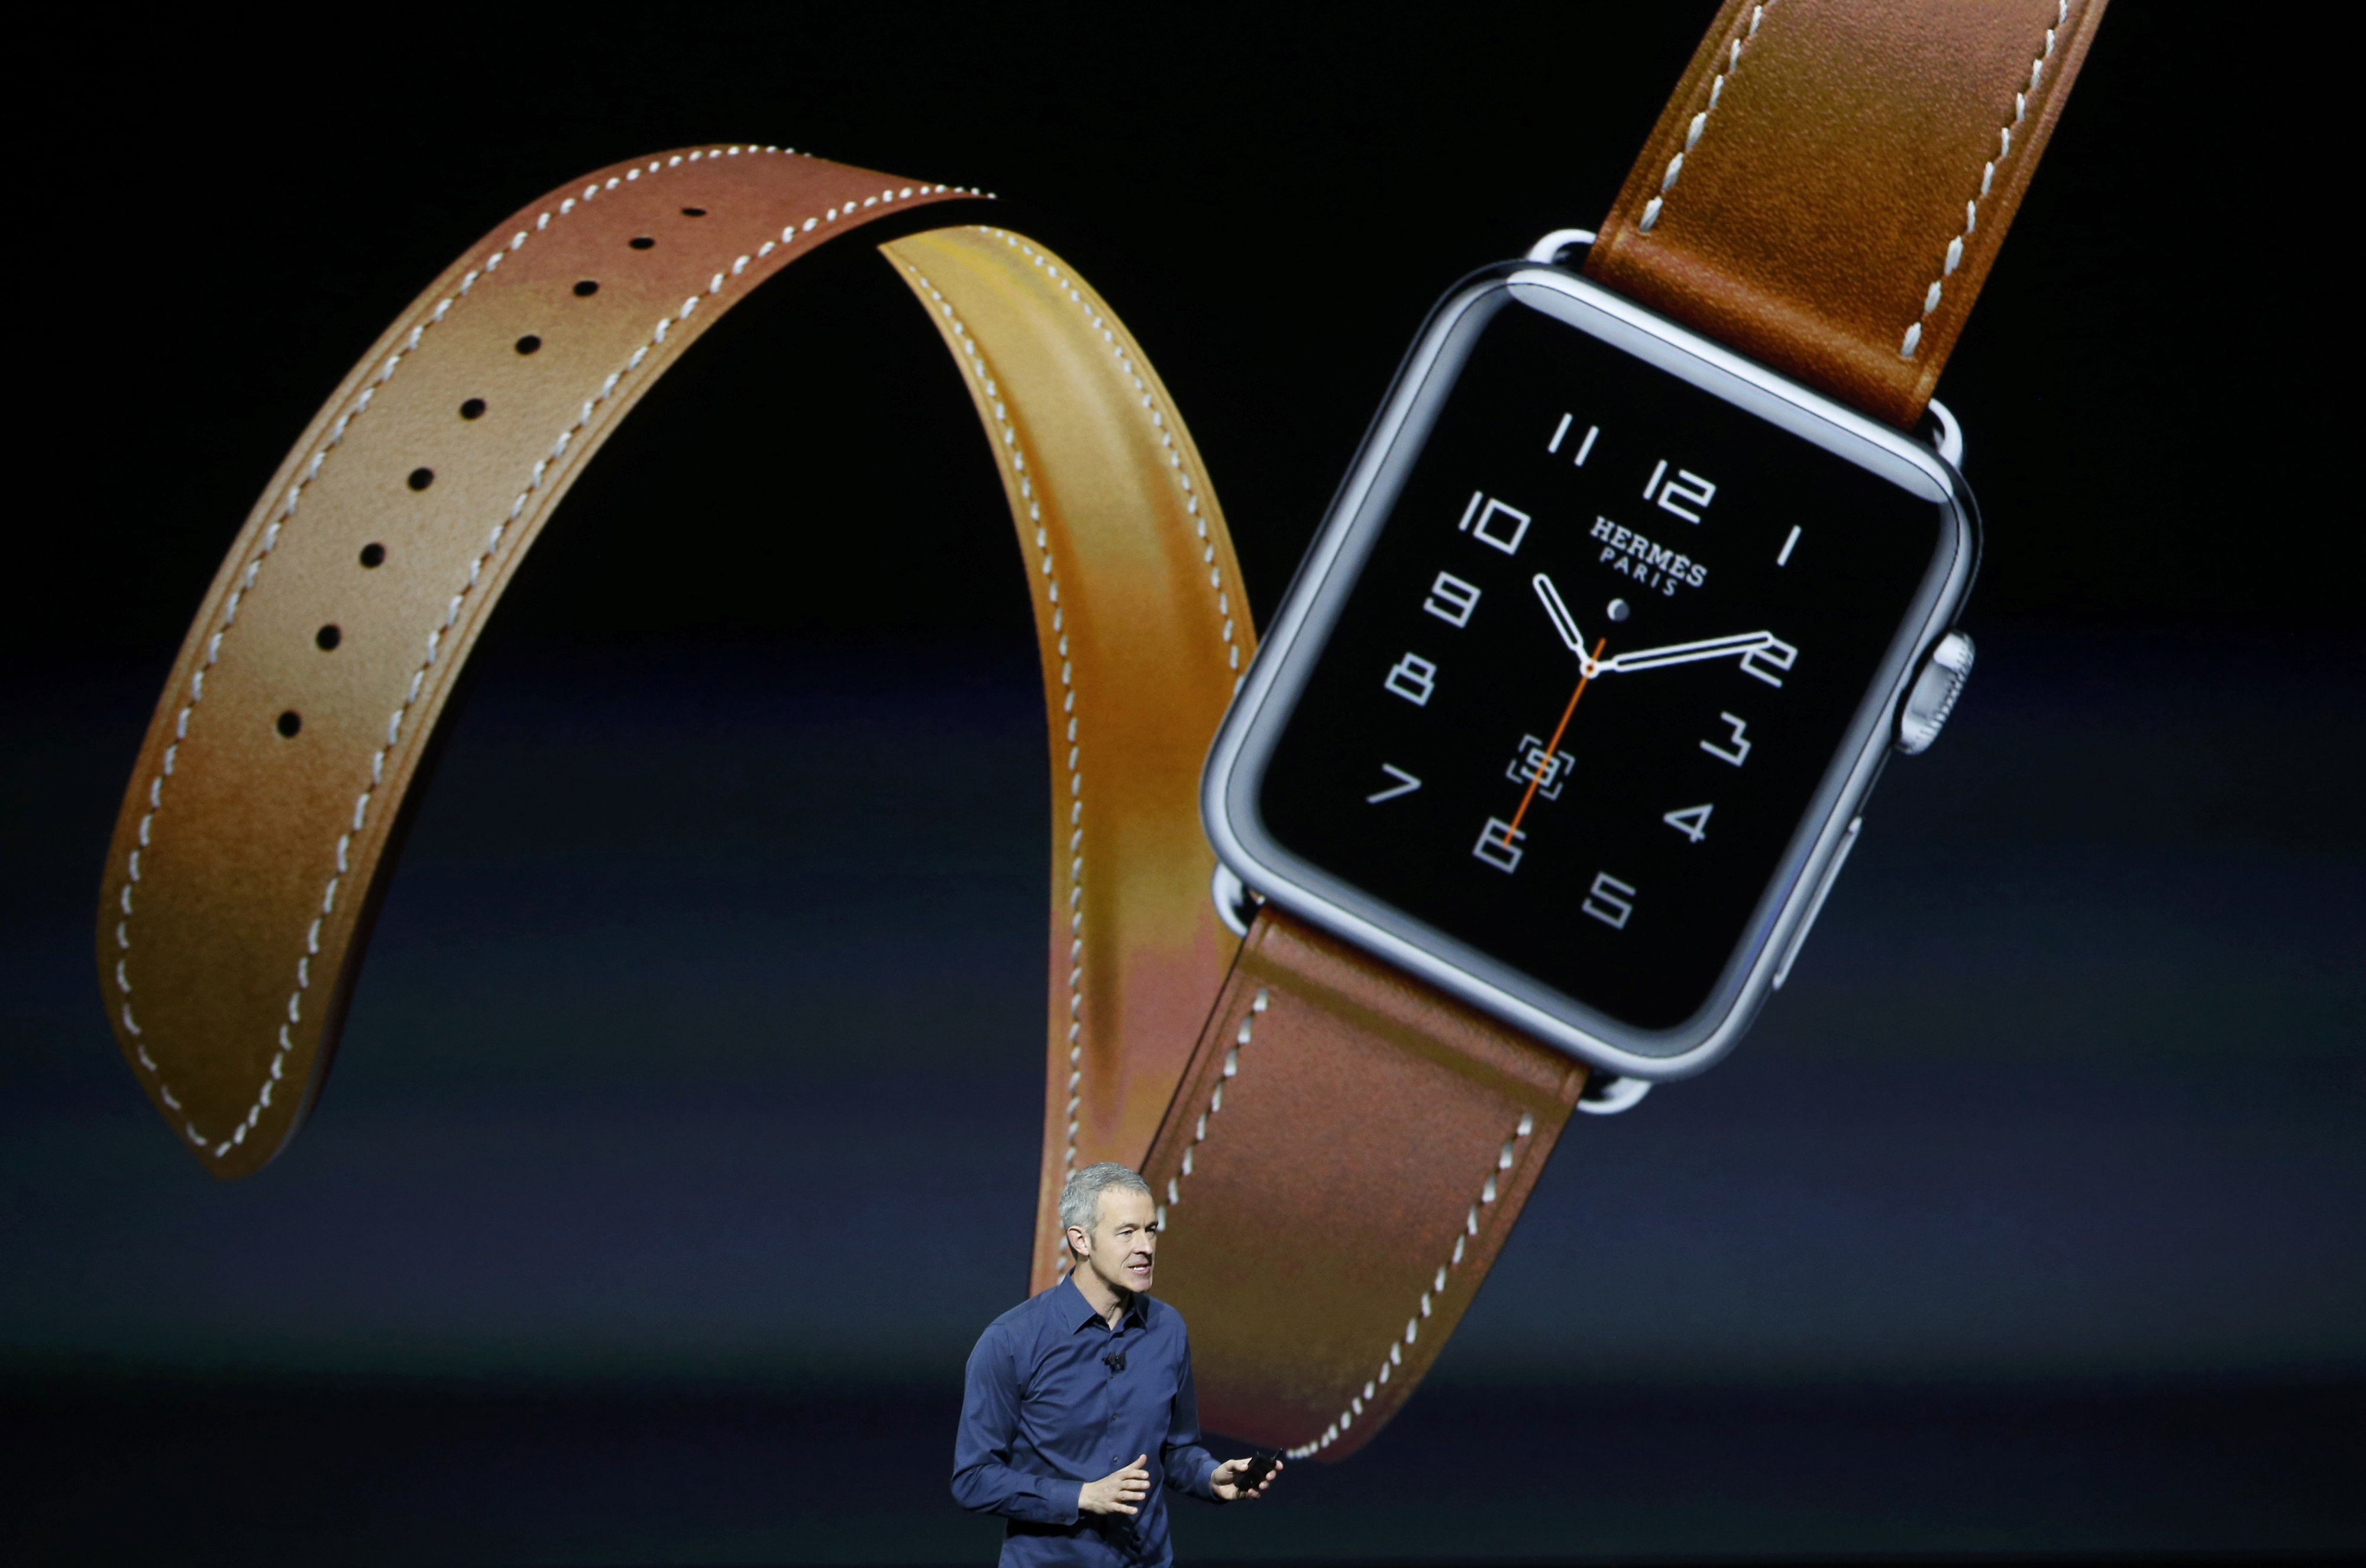 Jeff Williams Apple's senior vice president of Operations, speaks about the Hermes watchband for the Apple Watch, during an Apple media event in San Francisco, California, September 9, 2015. Reuters/Beck Diefenbach